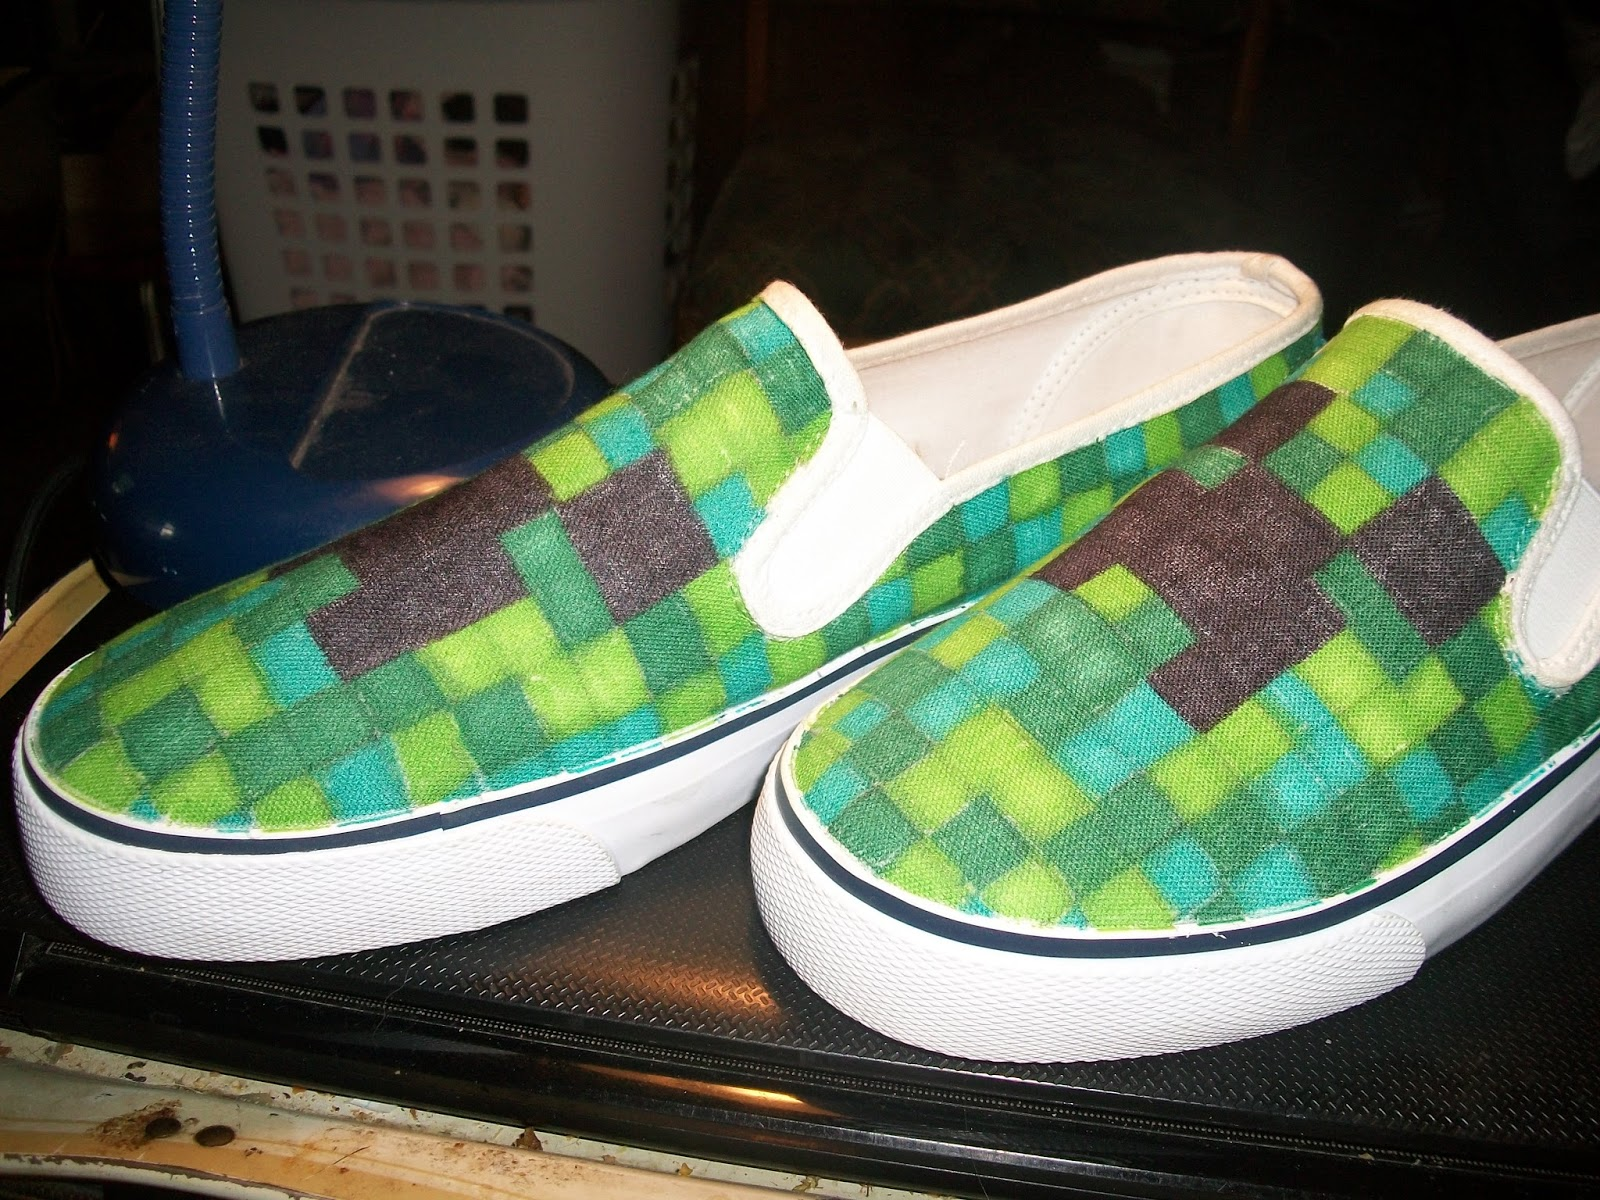 Creative Bling: Minecraft Shoes